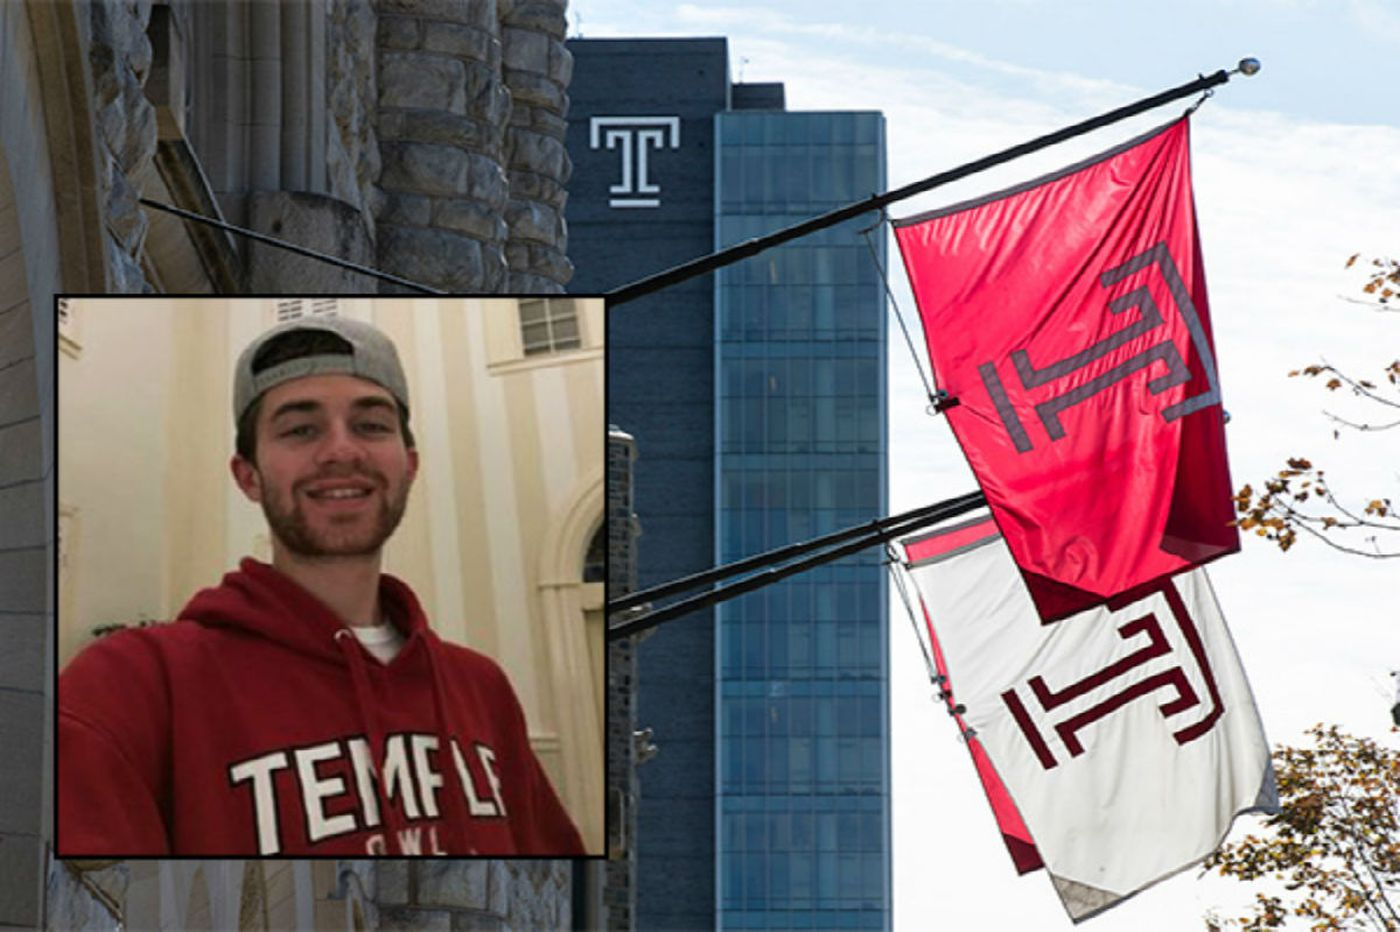 Temple student, 24, dies after being found unconscious in library